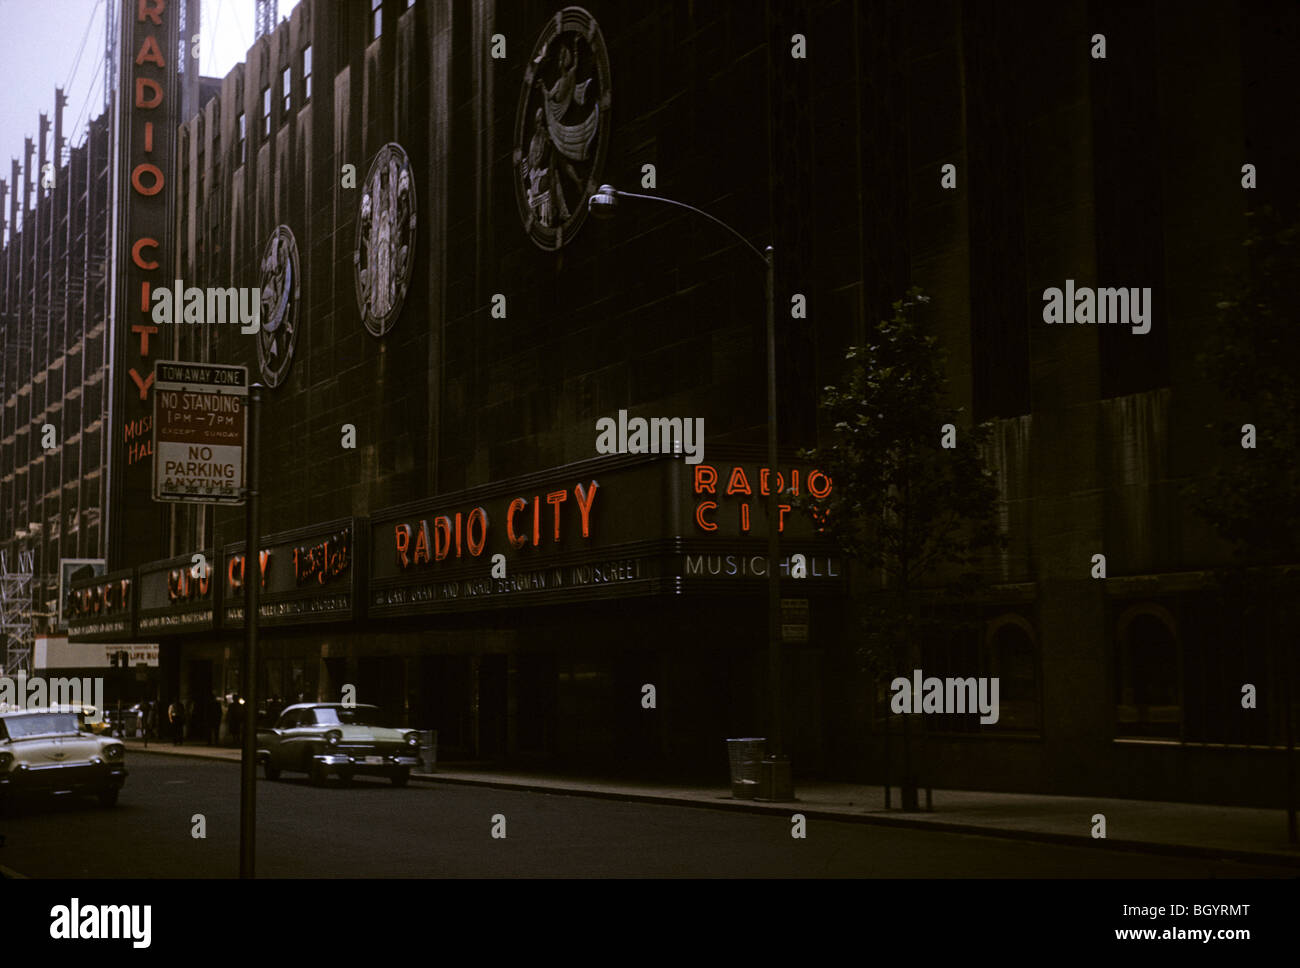 Radio City Music Hall in New York, NY during August 1958. - Stock Image